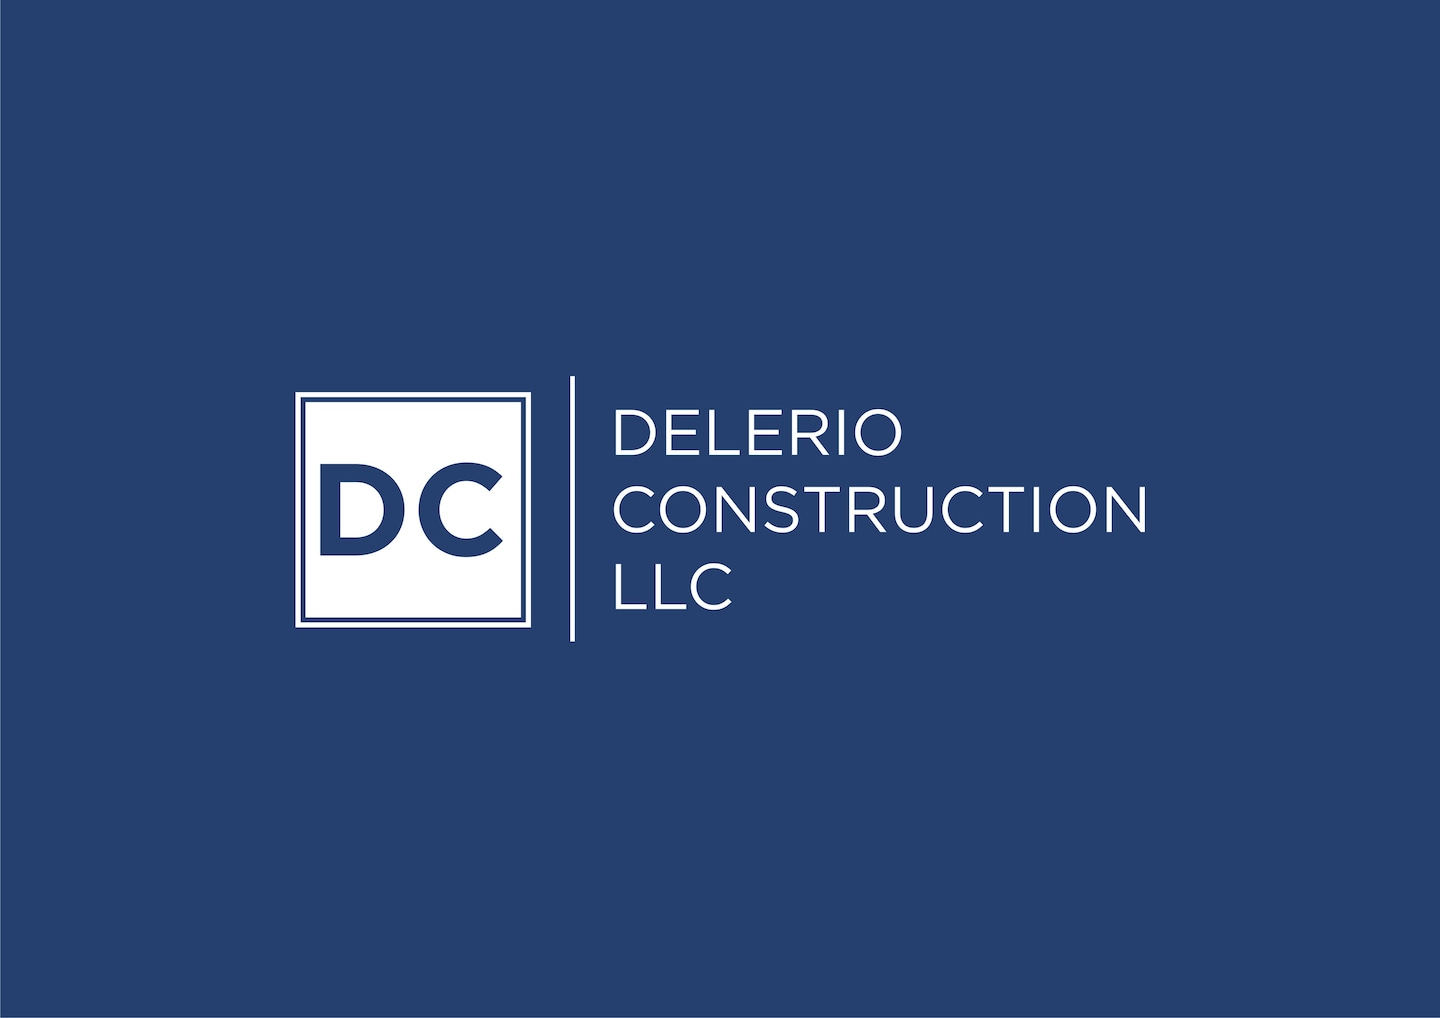 Delerio Construction logo